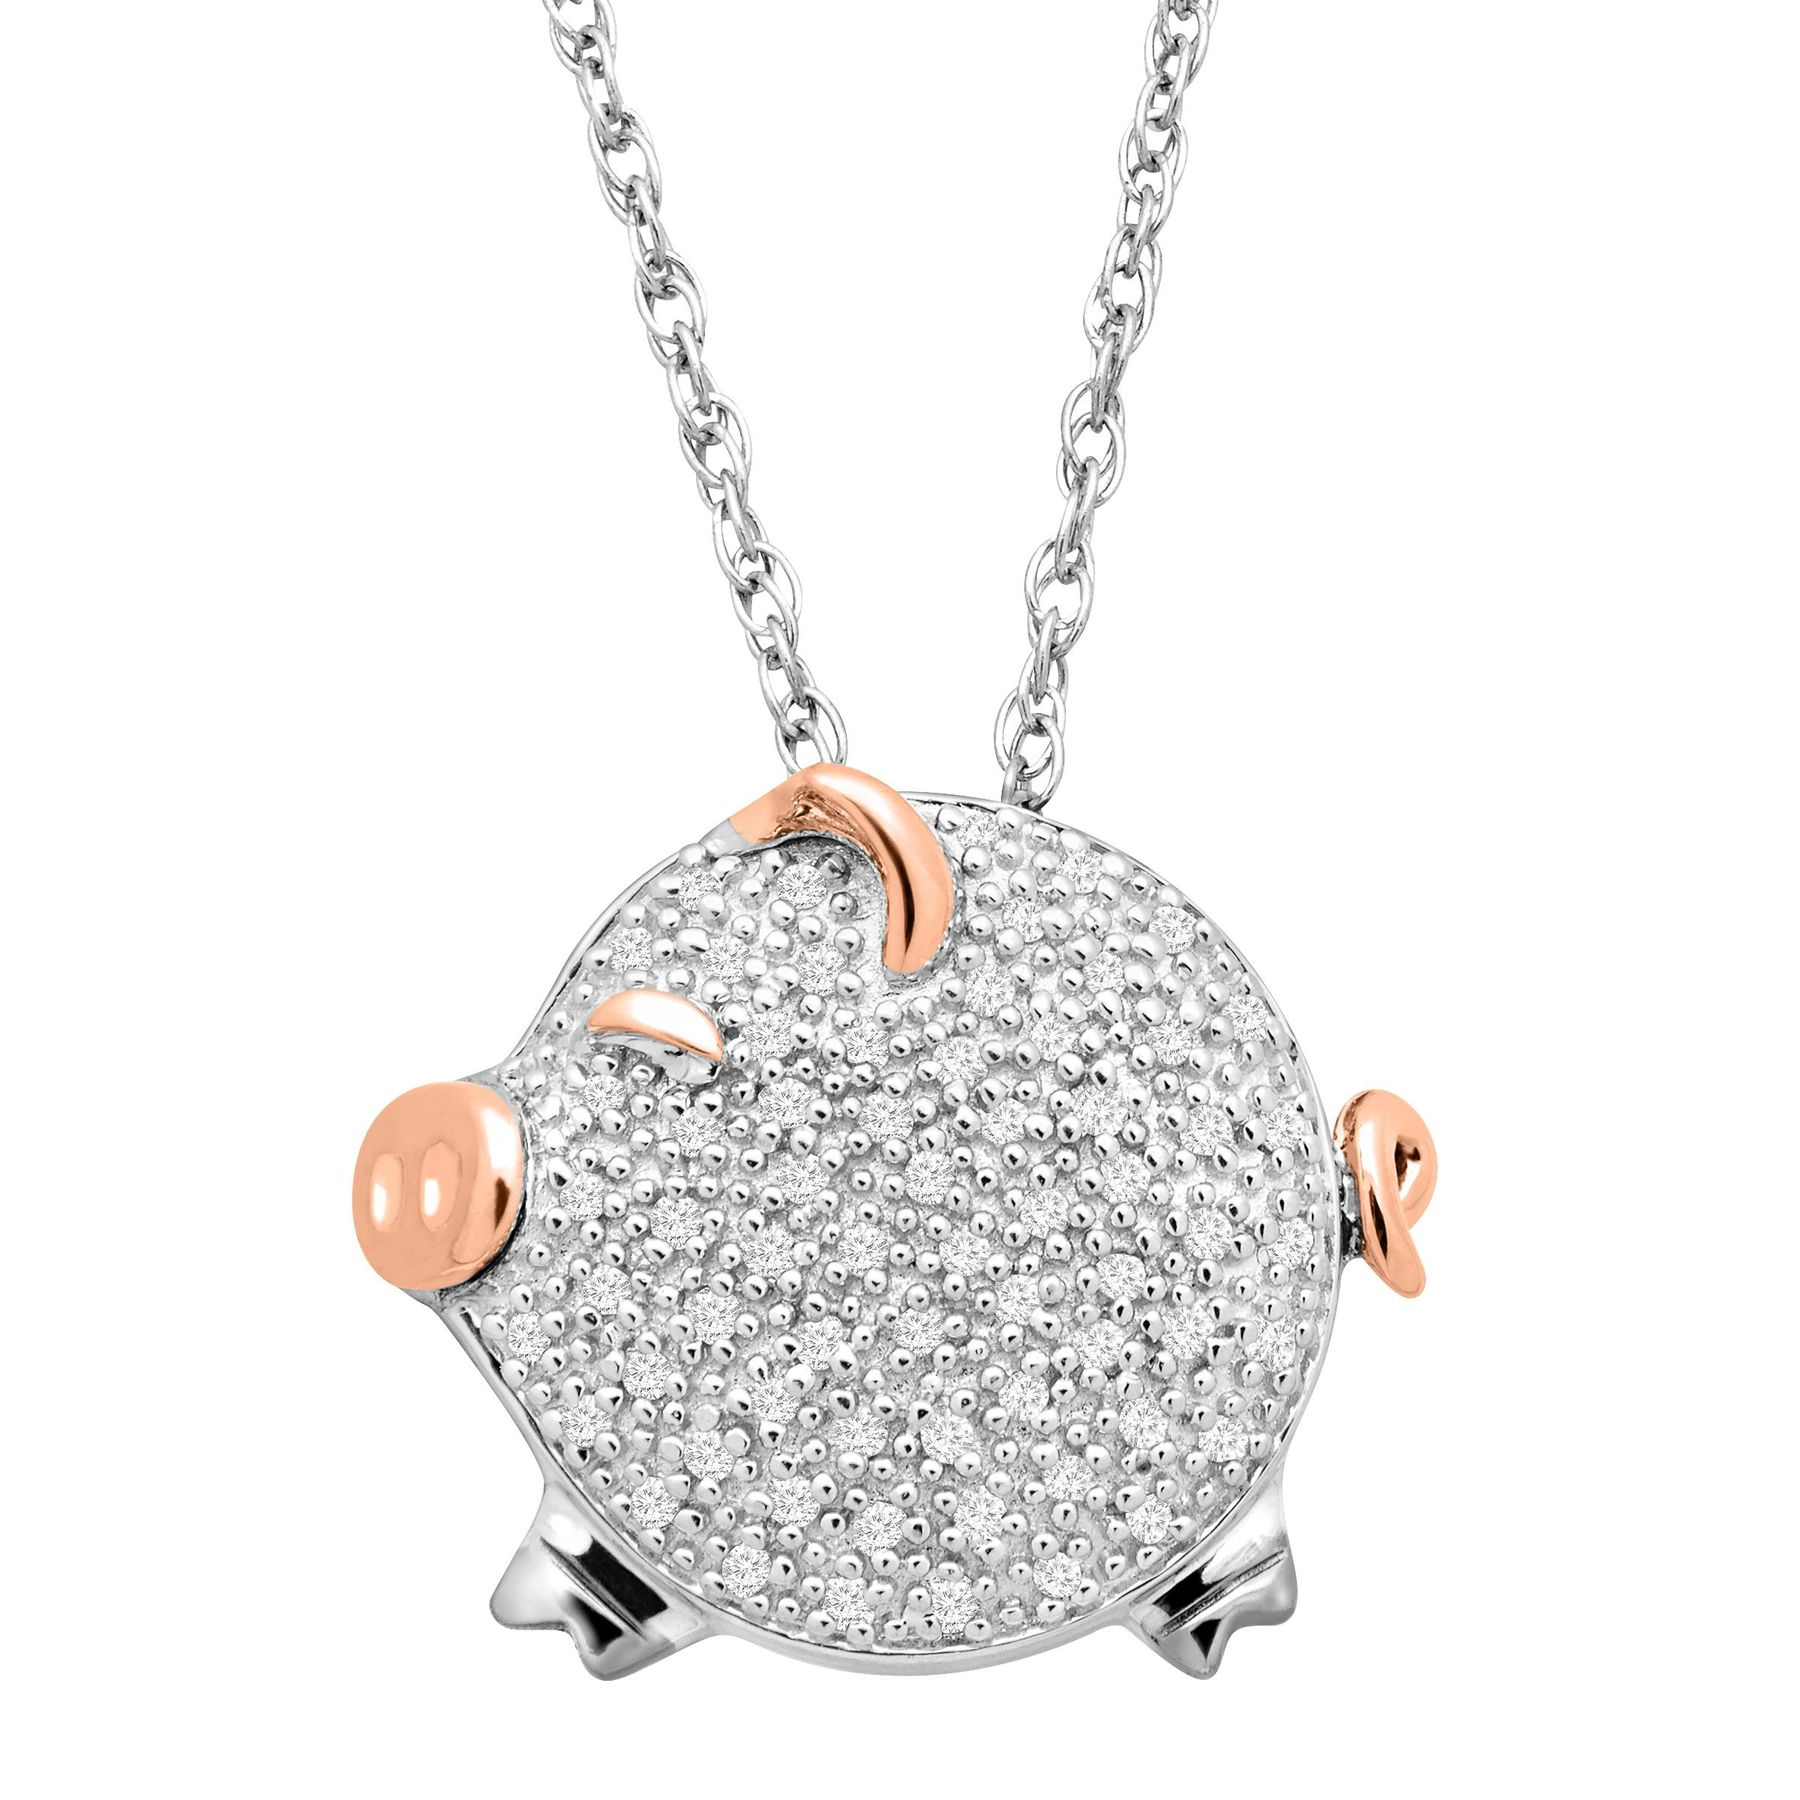 15 ct diamond pig pendant in sterling silver 14k rose gold 15 15 ct diamond pig pendant mozeypictures Gallery